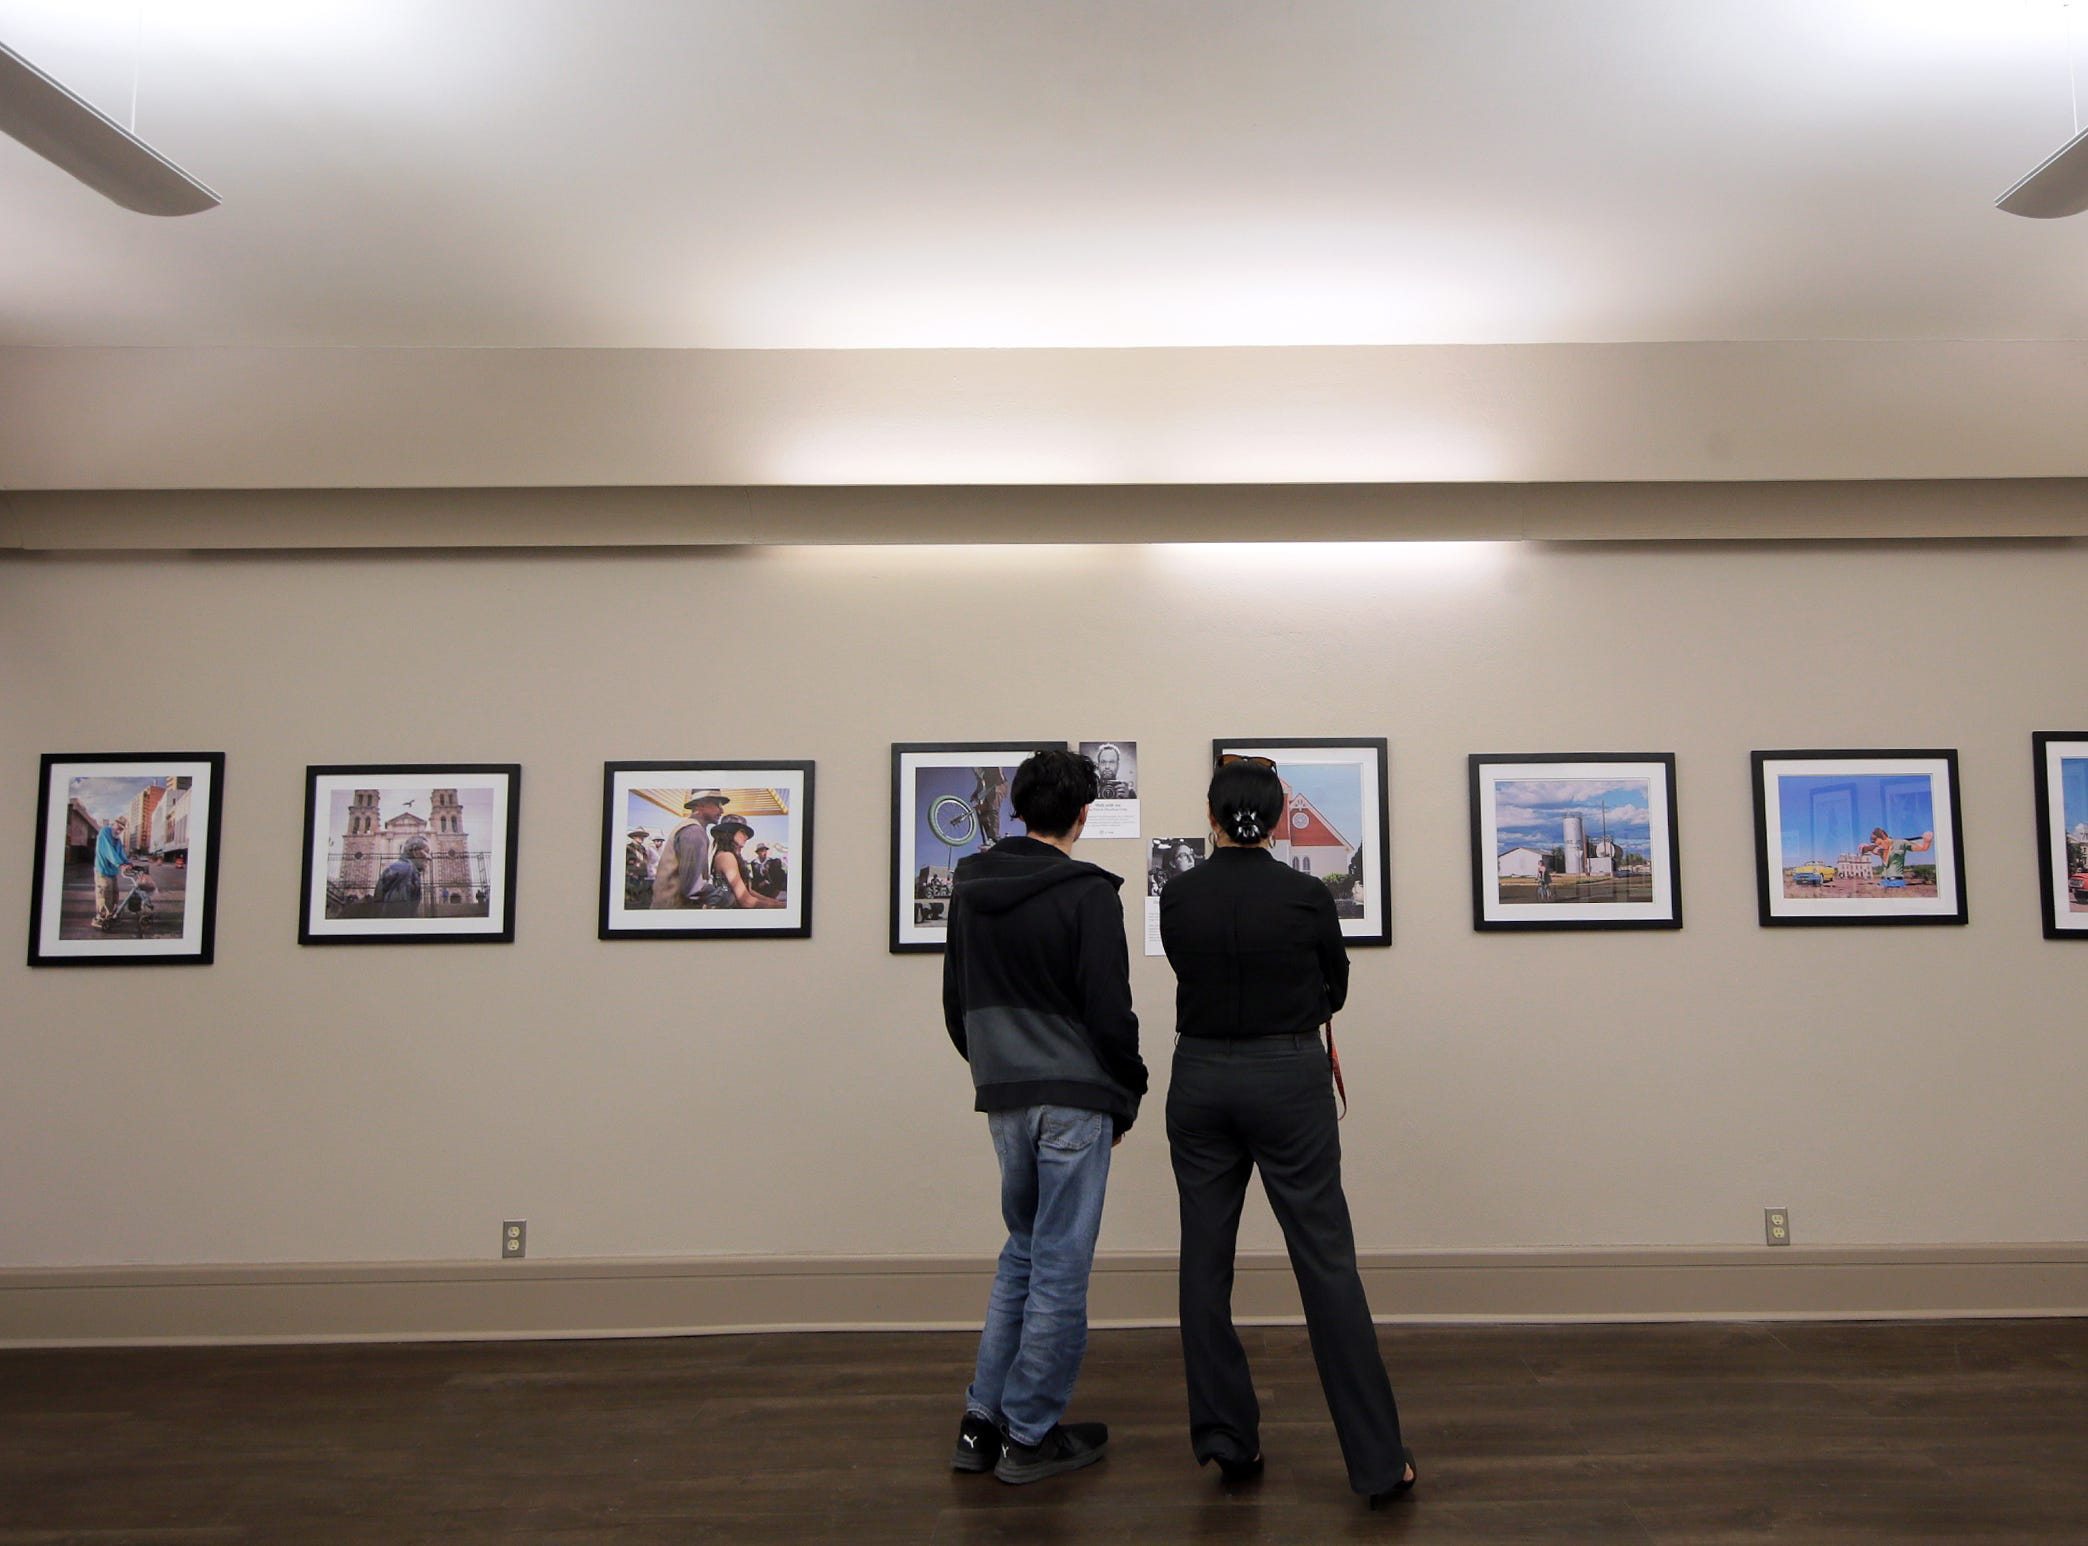 """Rebirth Of Duranguito and Border Street, A Photo Exhibition"" opened Thursday at UTEP's Centennial Museum."